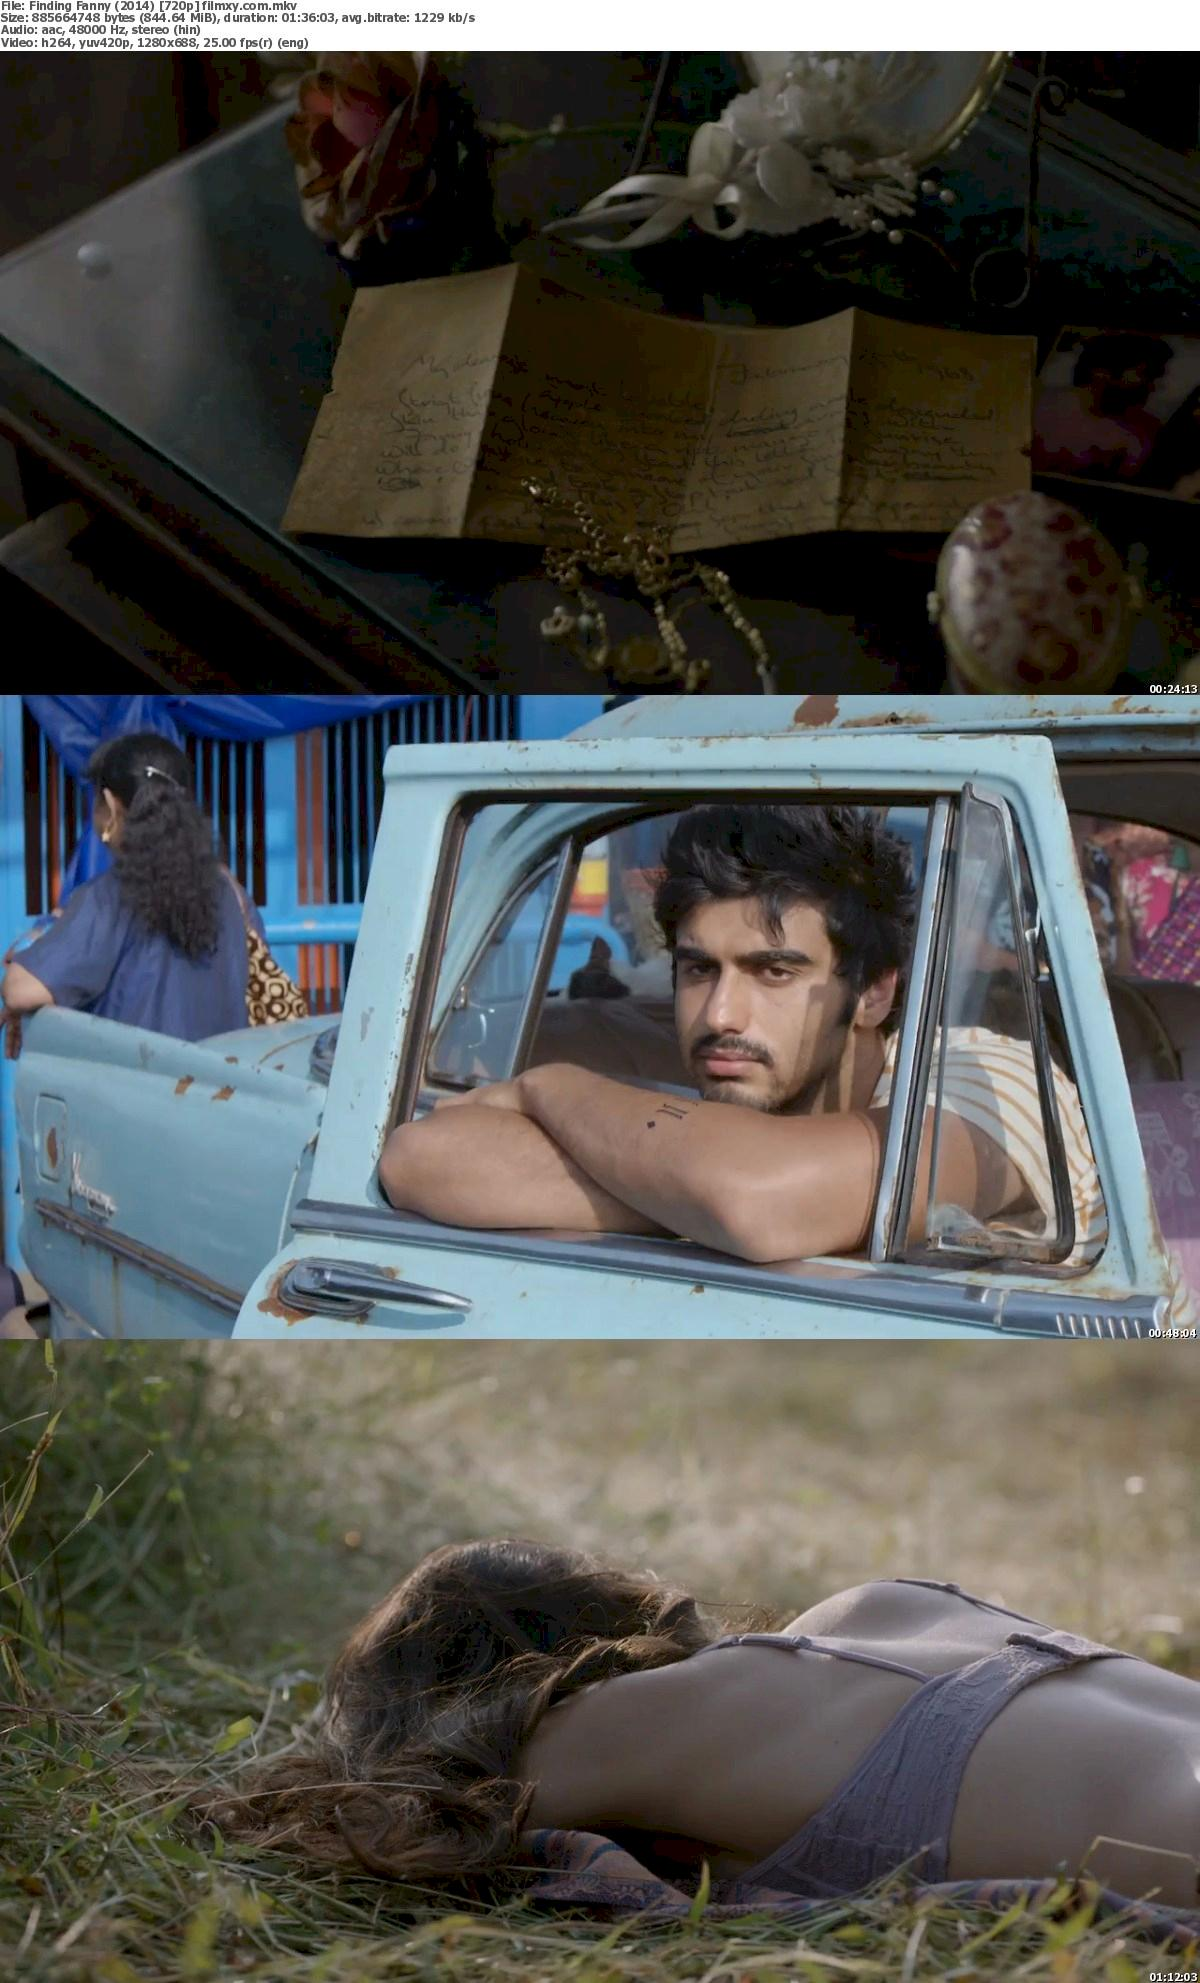 Finding Fanny (2014) 720p Bluray Free Download 720p Screenshot